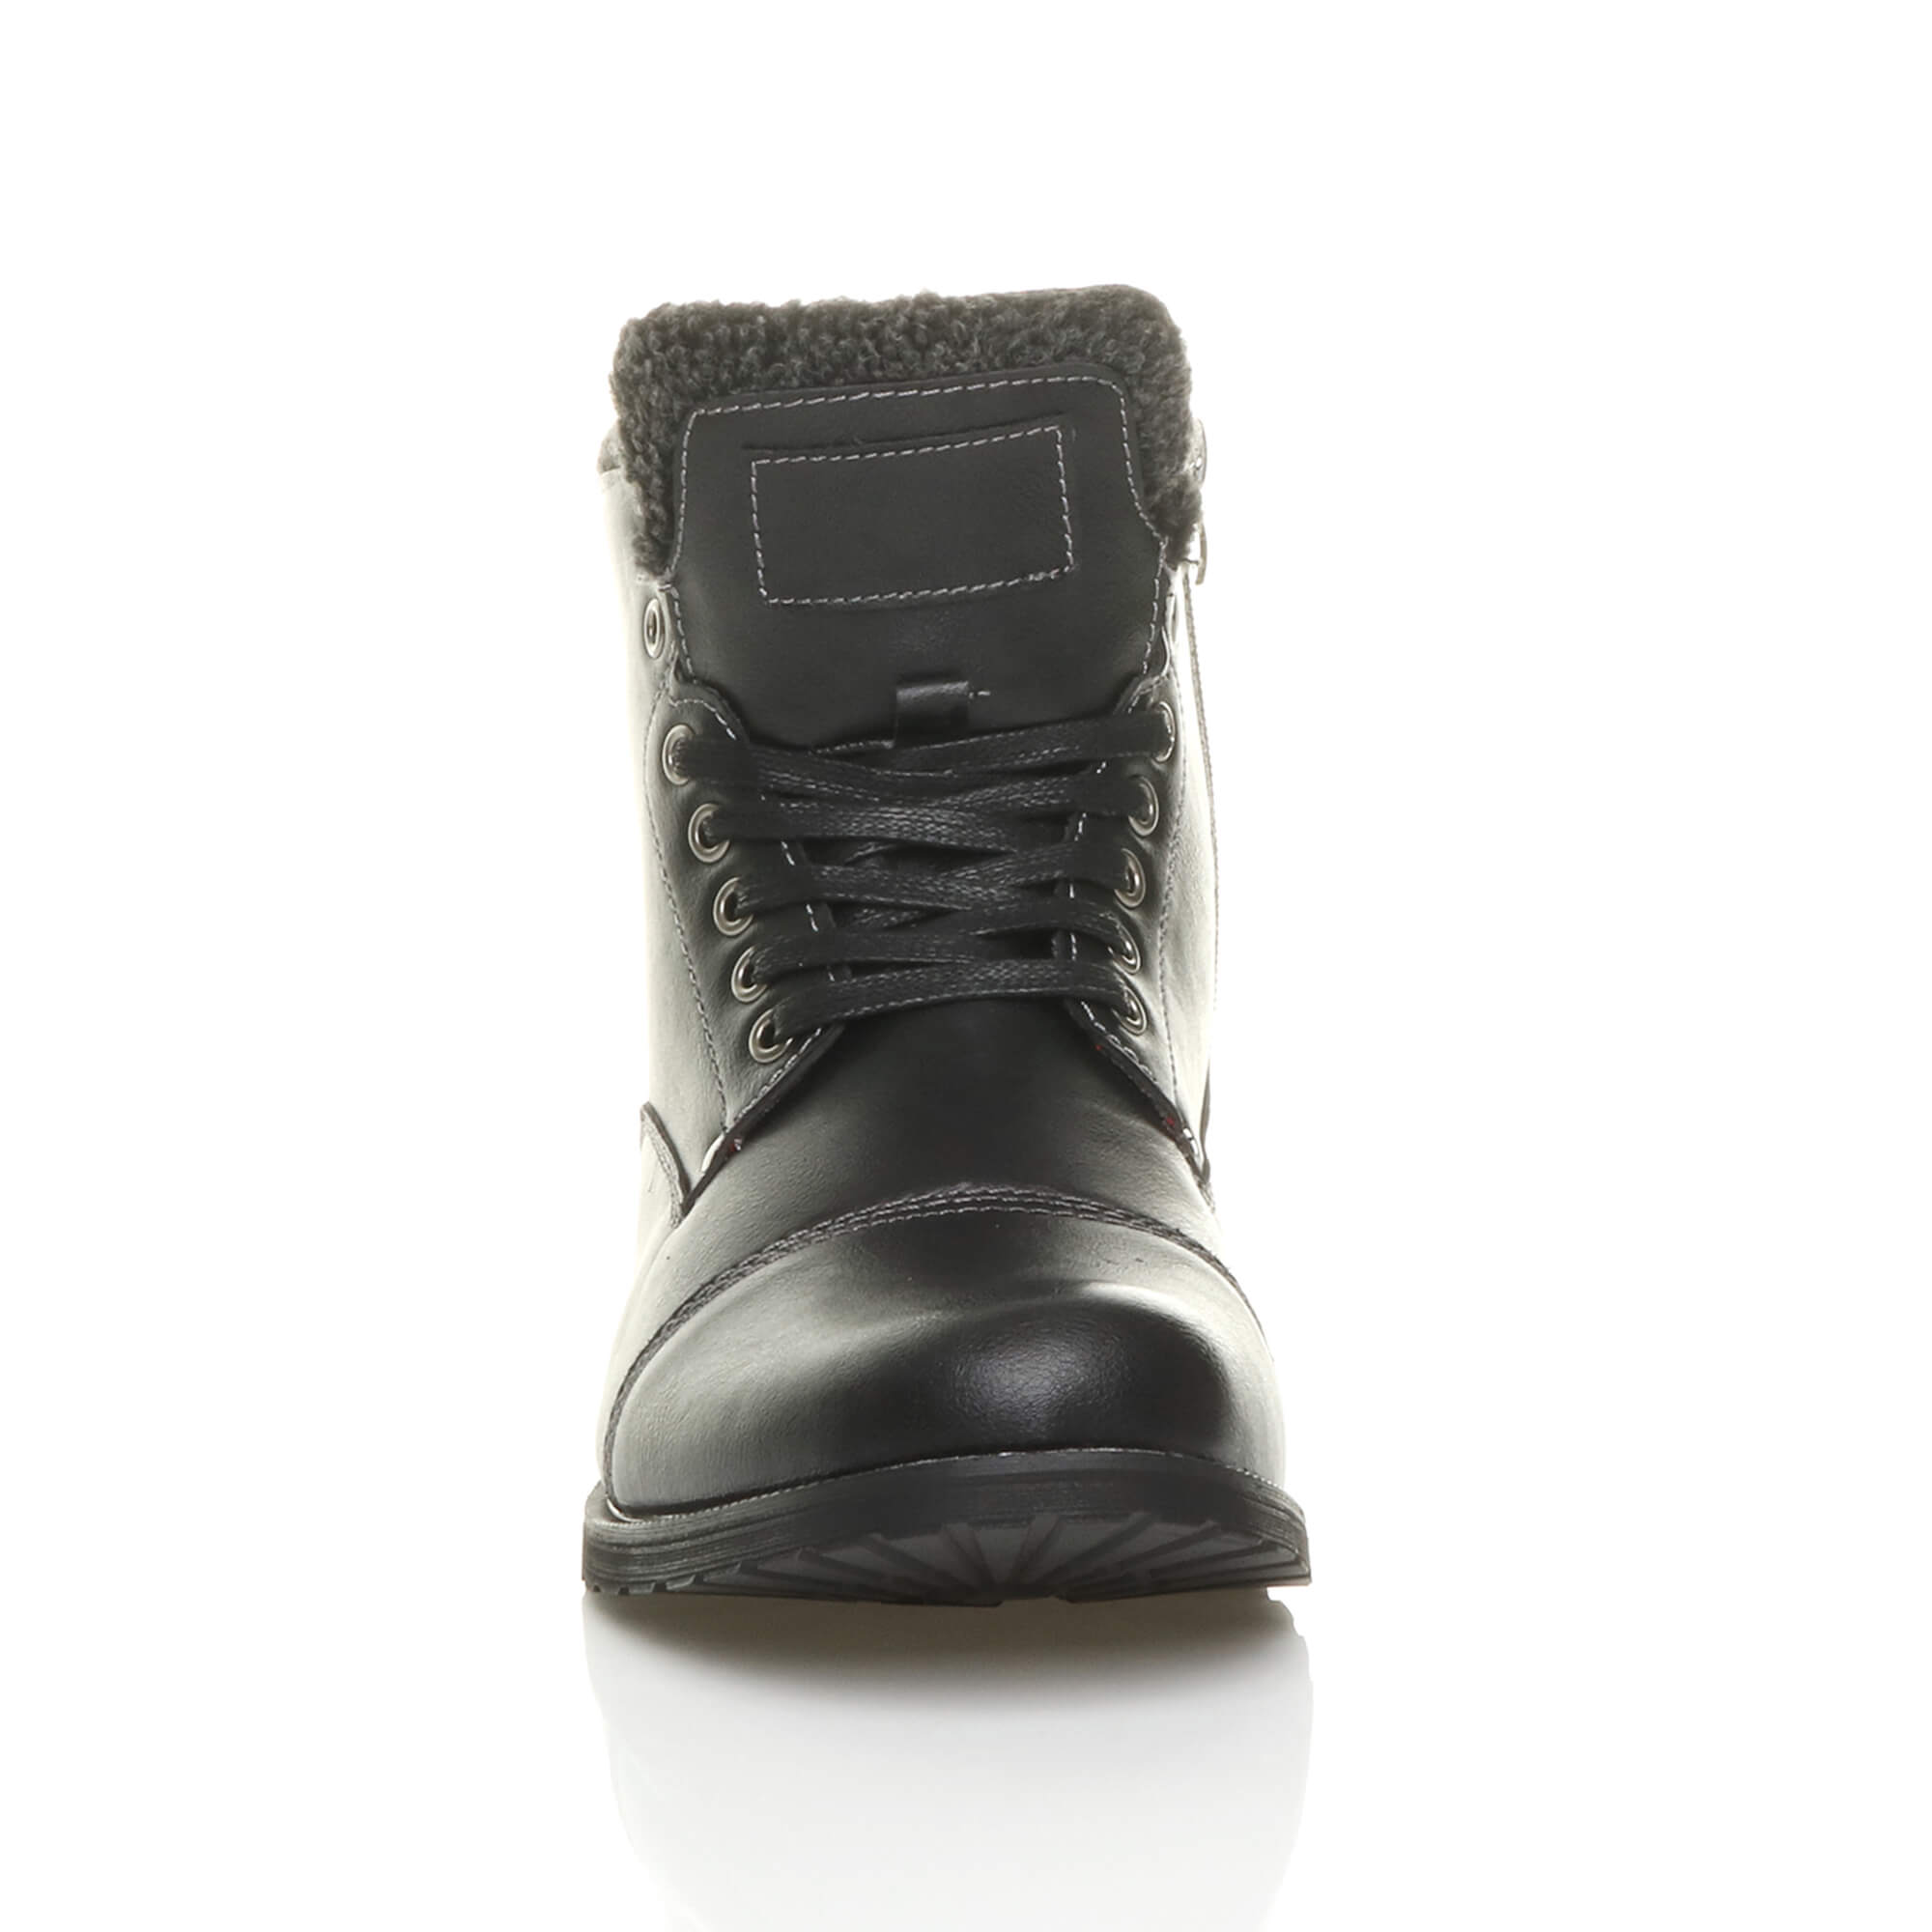 MENS-LACE-UP-ZIP-FUR-TRIM-SMART-WORK-WINTER-ARMY-MILITARY-BIKER-ANKLE-BOOTS-SIZE thumbnail 7